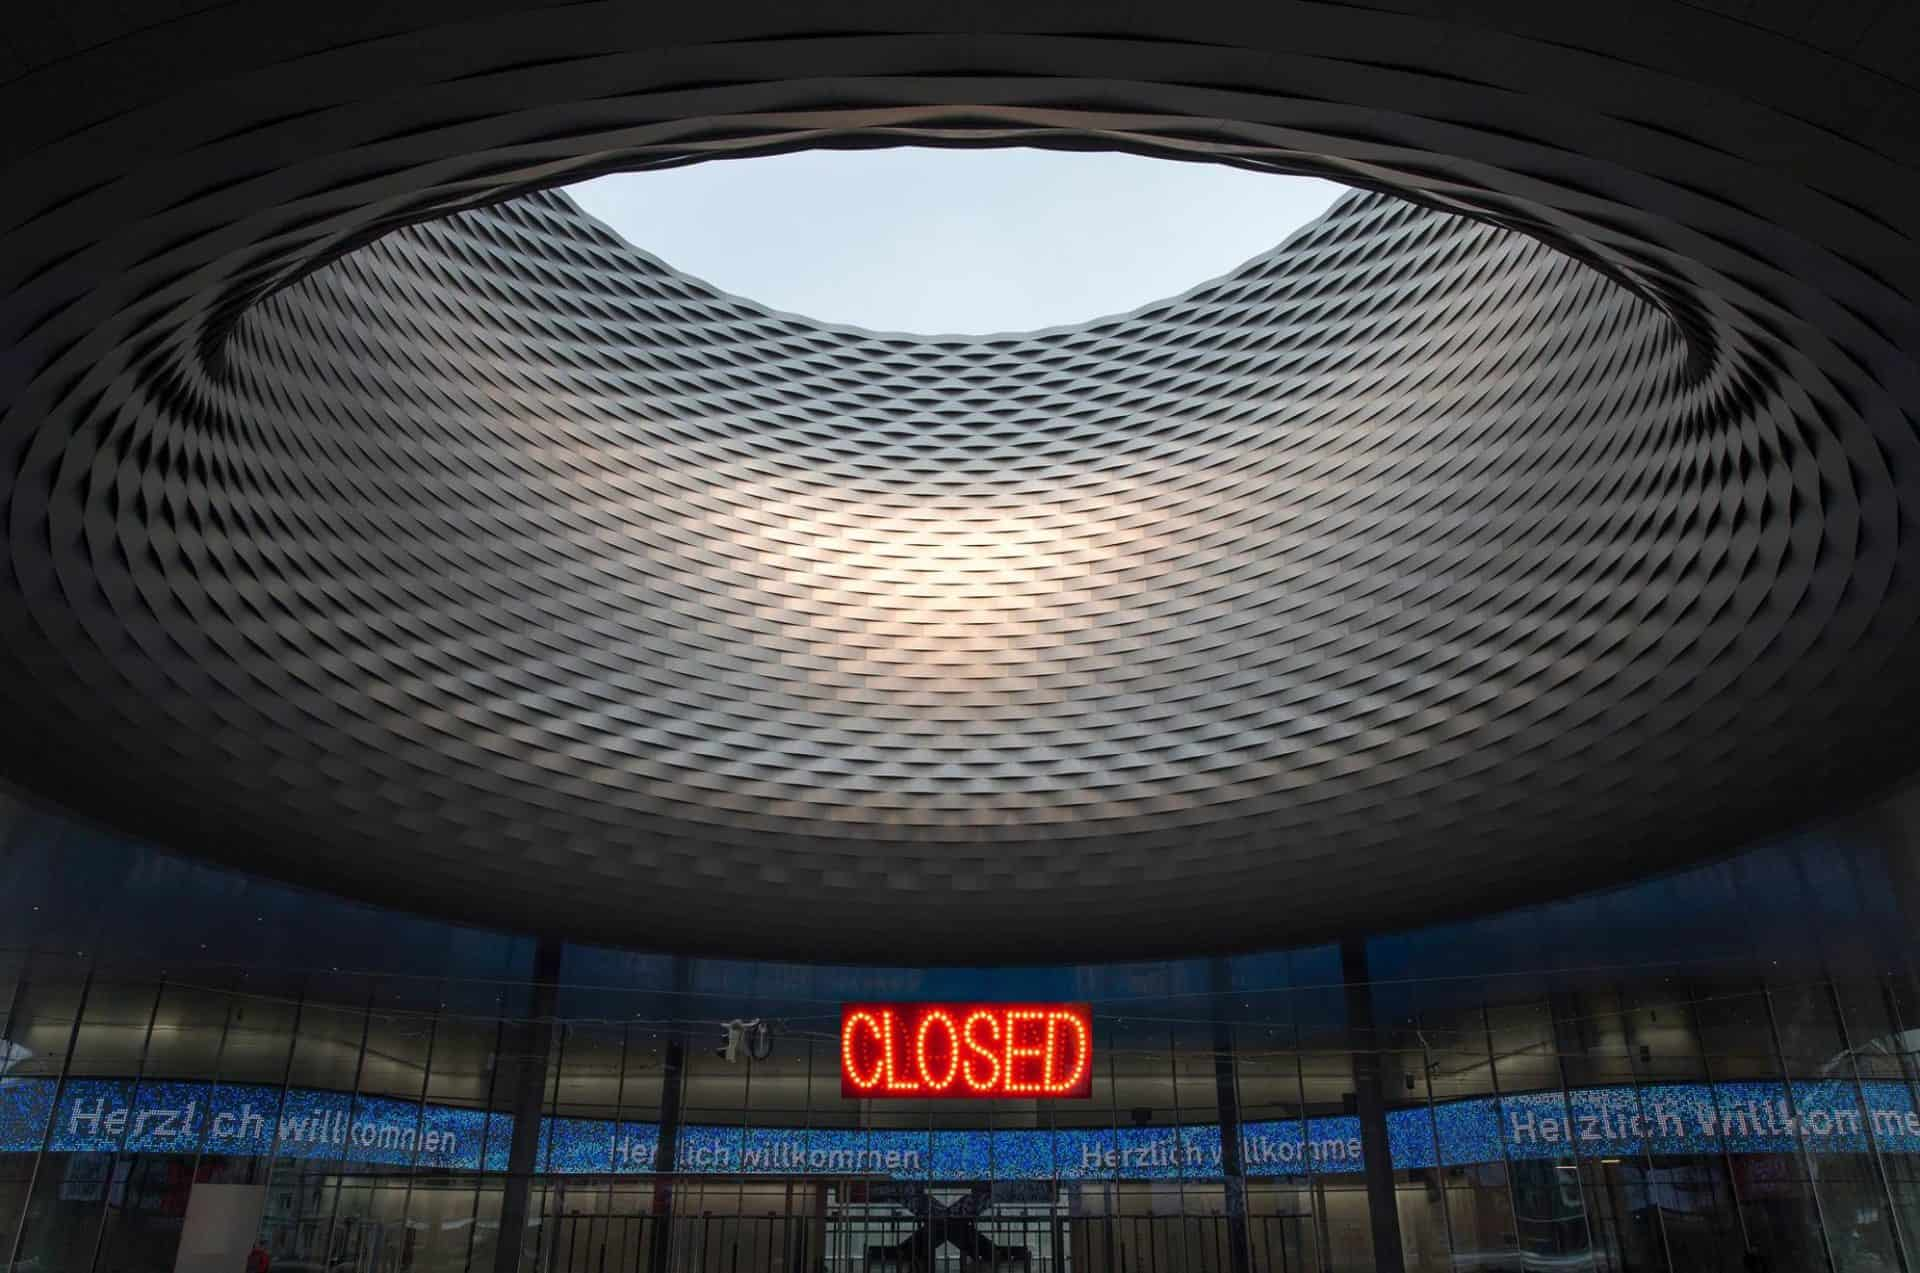 Quo vadis Baselworld? Ende Juli 2018 hat sich die Swatch Group verabschiedetBaselworld 2019 ohne Swatch Group – der Anfang vom Ende?